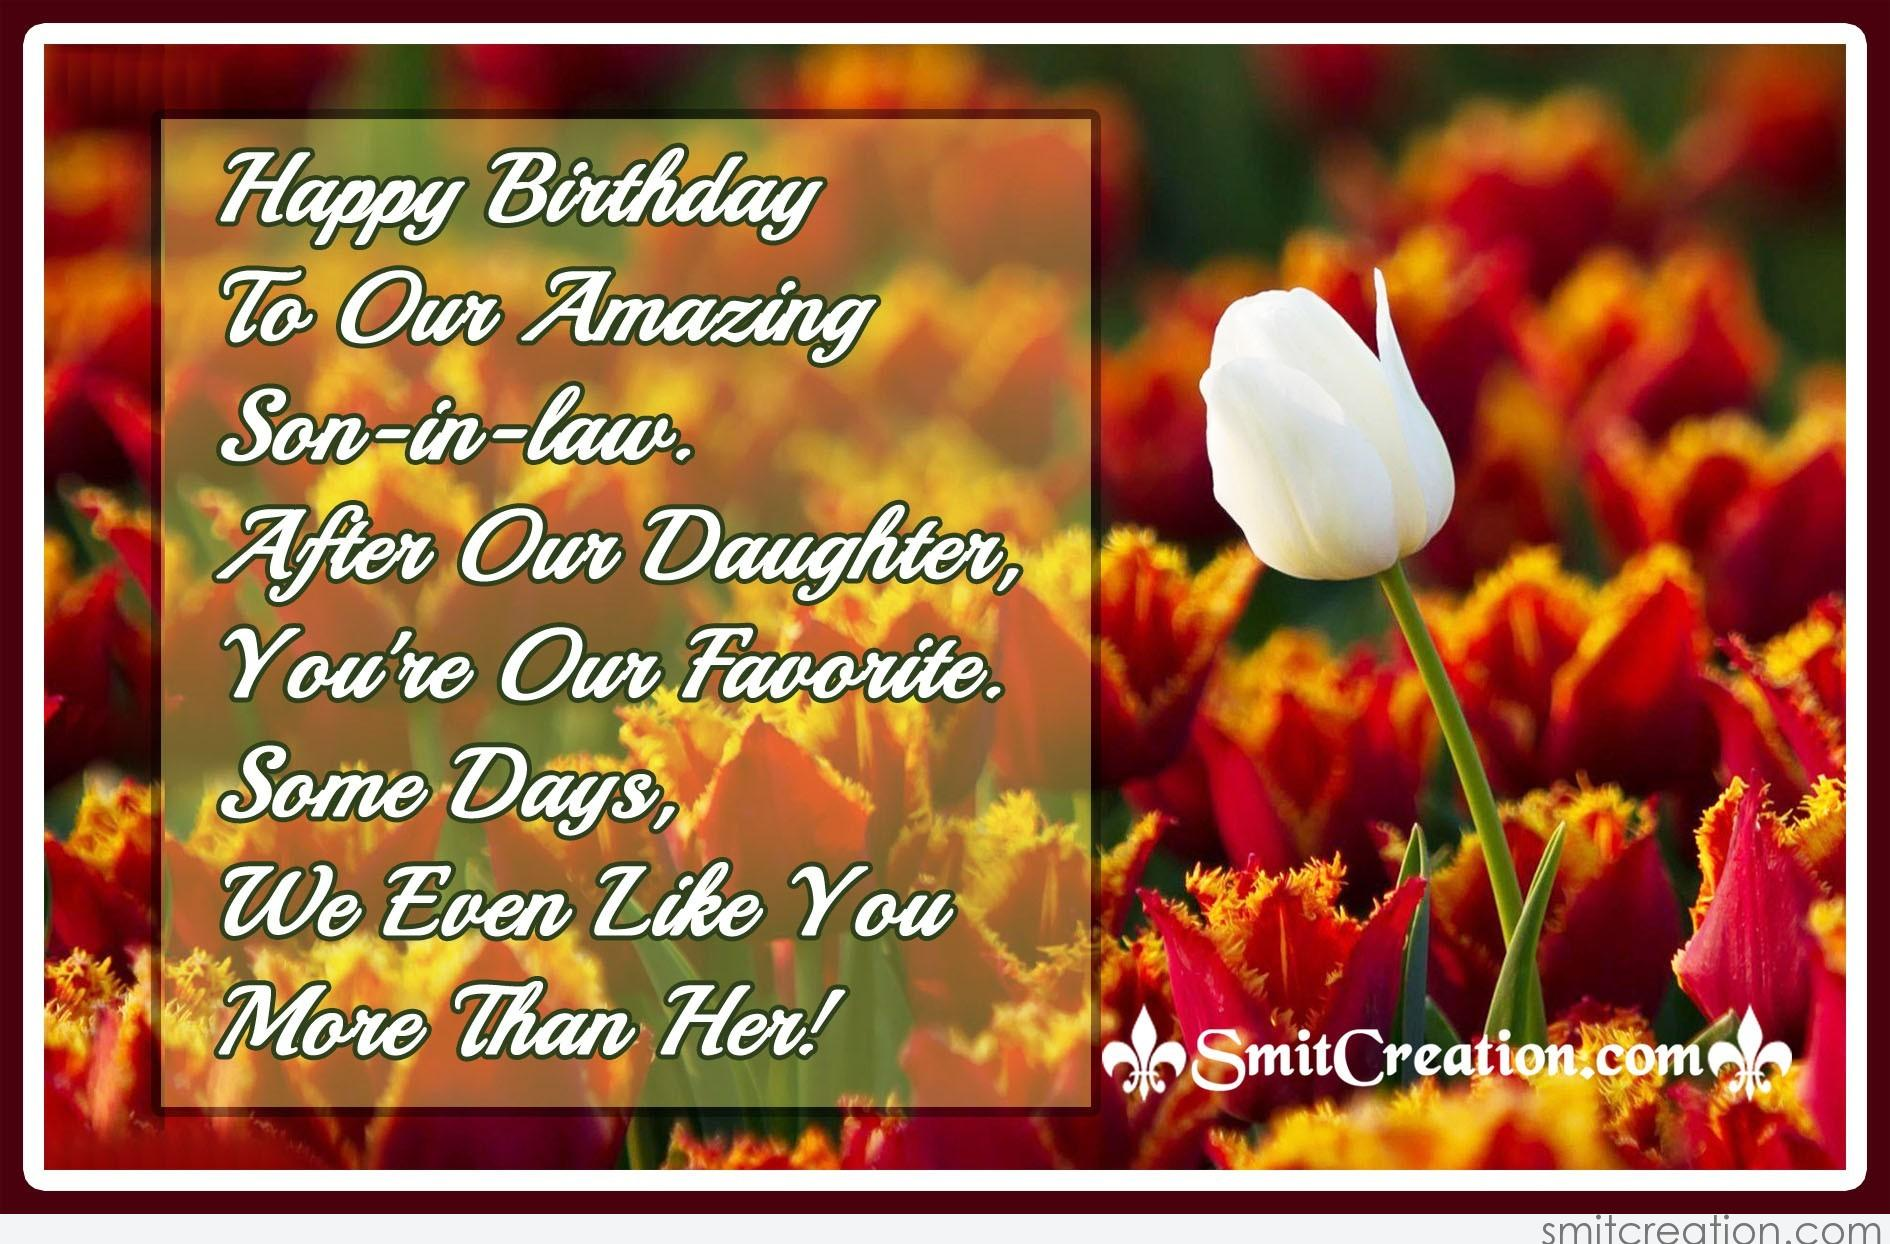 Happy Birthday Wishes For Son In Law: Birthday Wishes For In-Law Pictures And Graphics